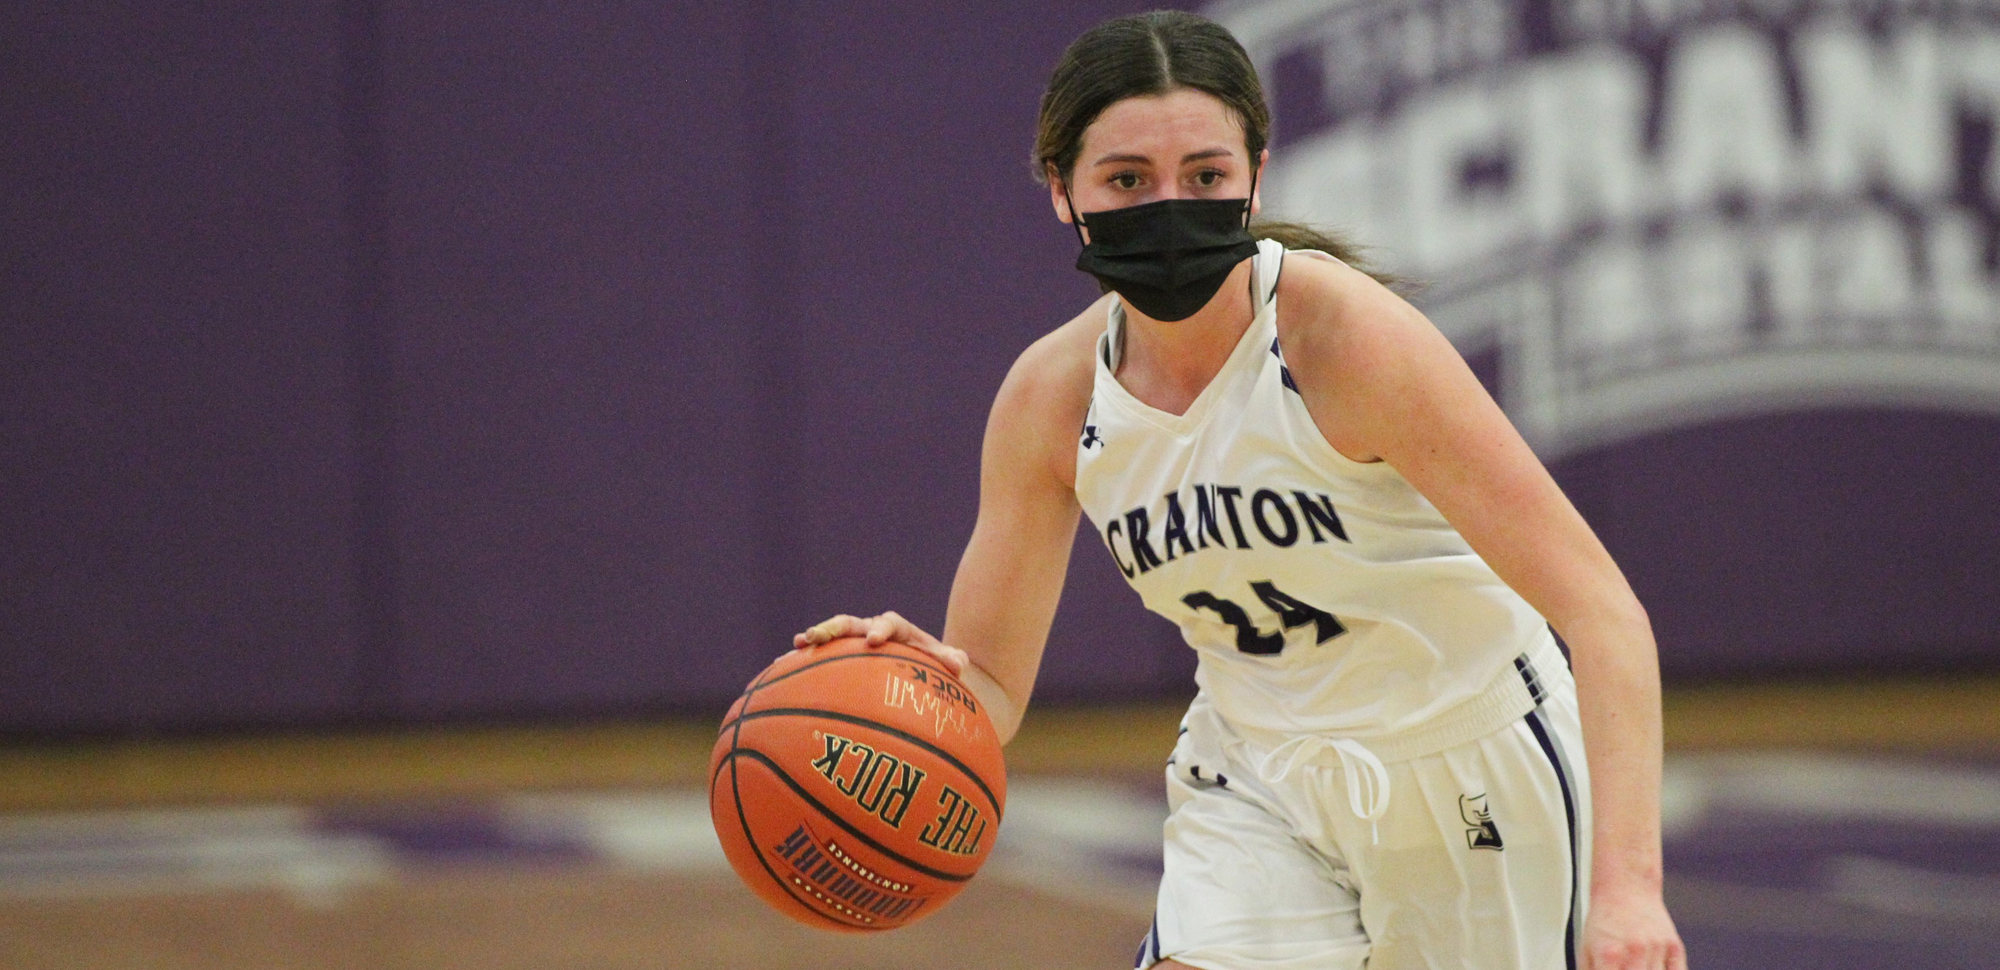 Bridget Monaghan Named University of Scranton Athlete of the Week